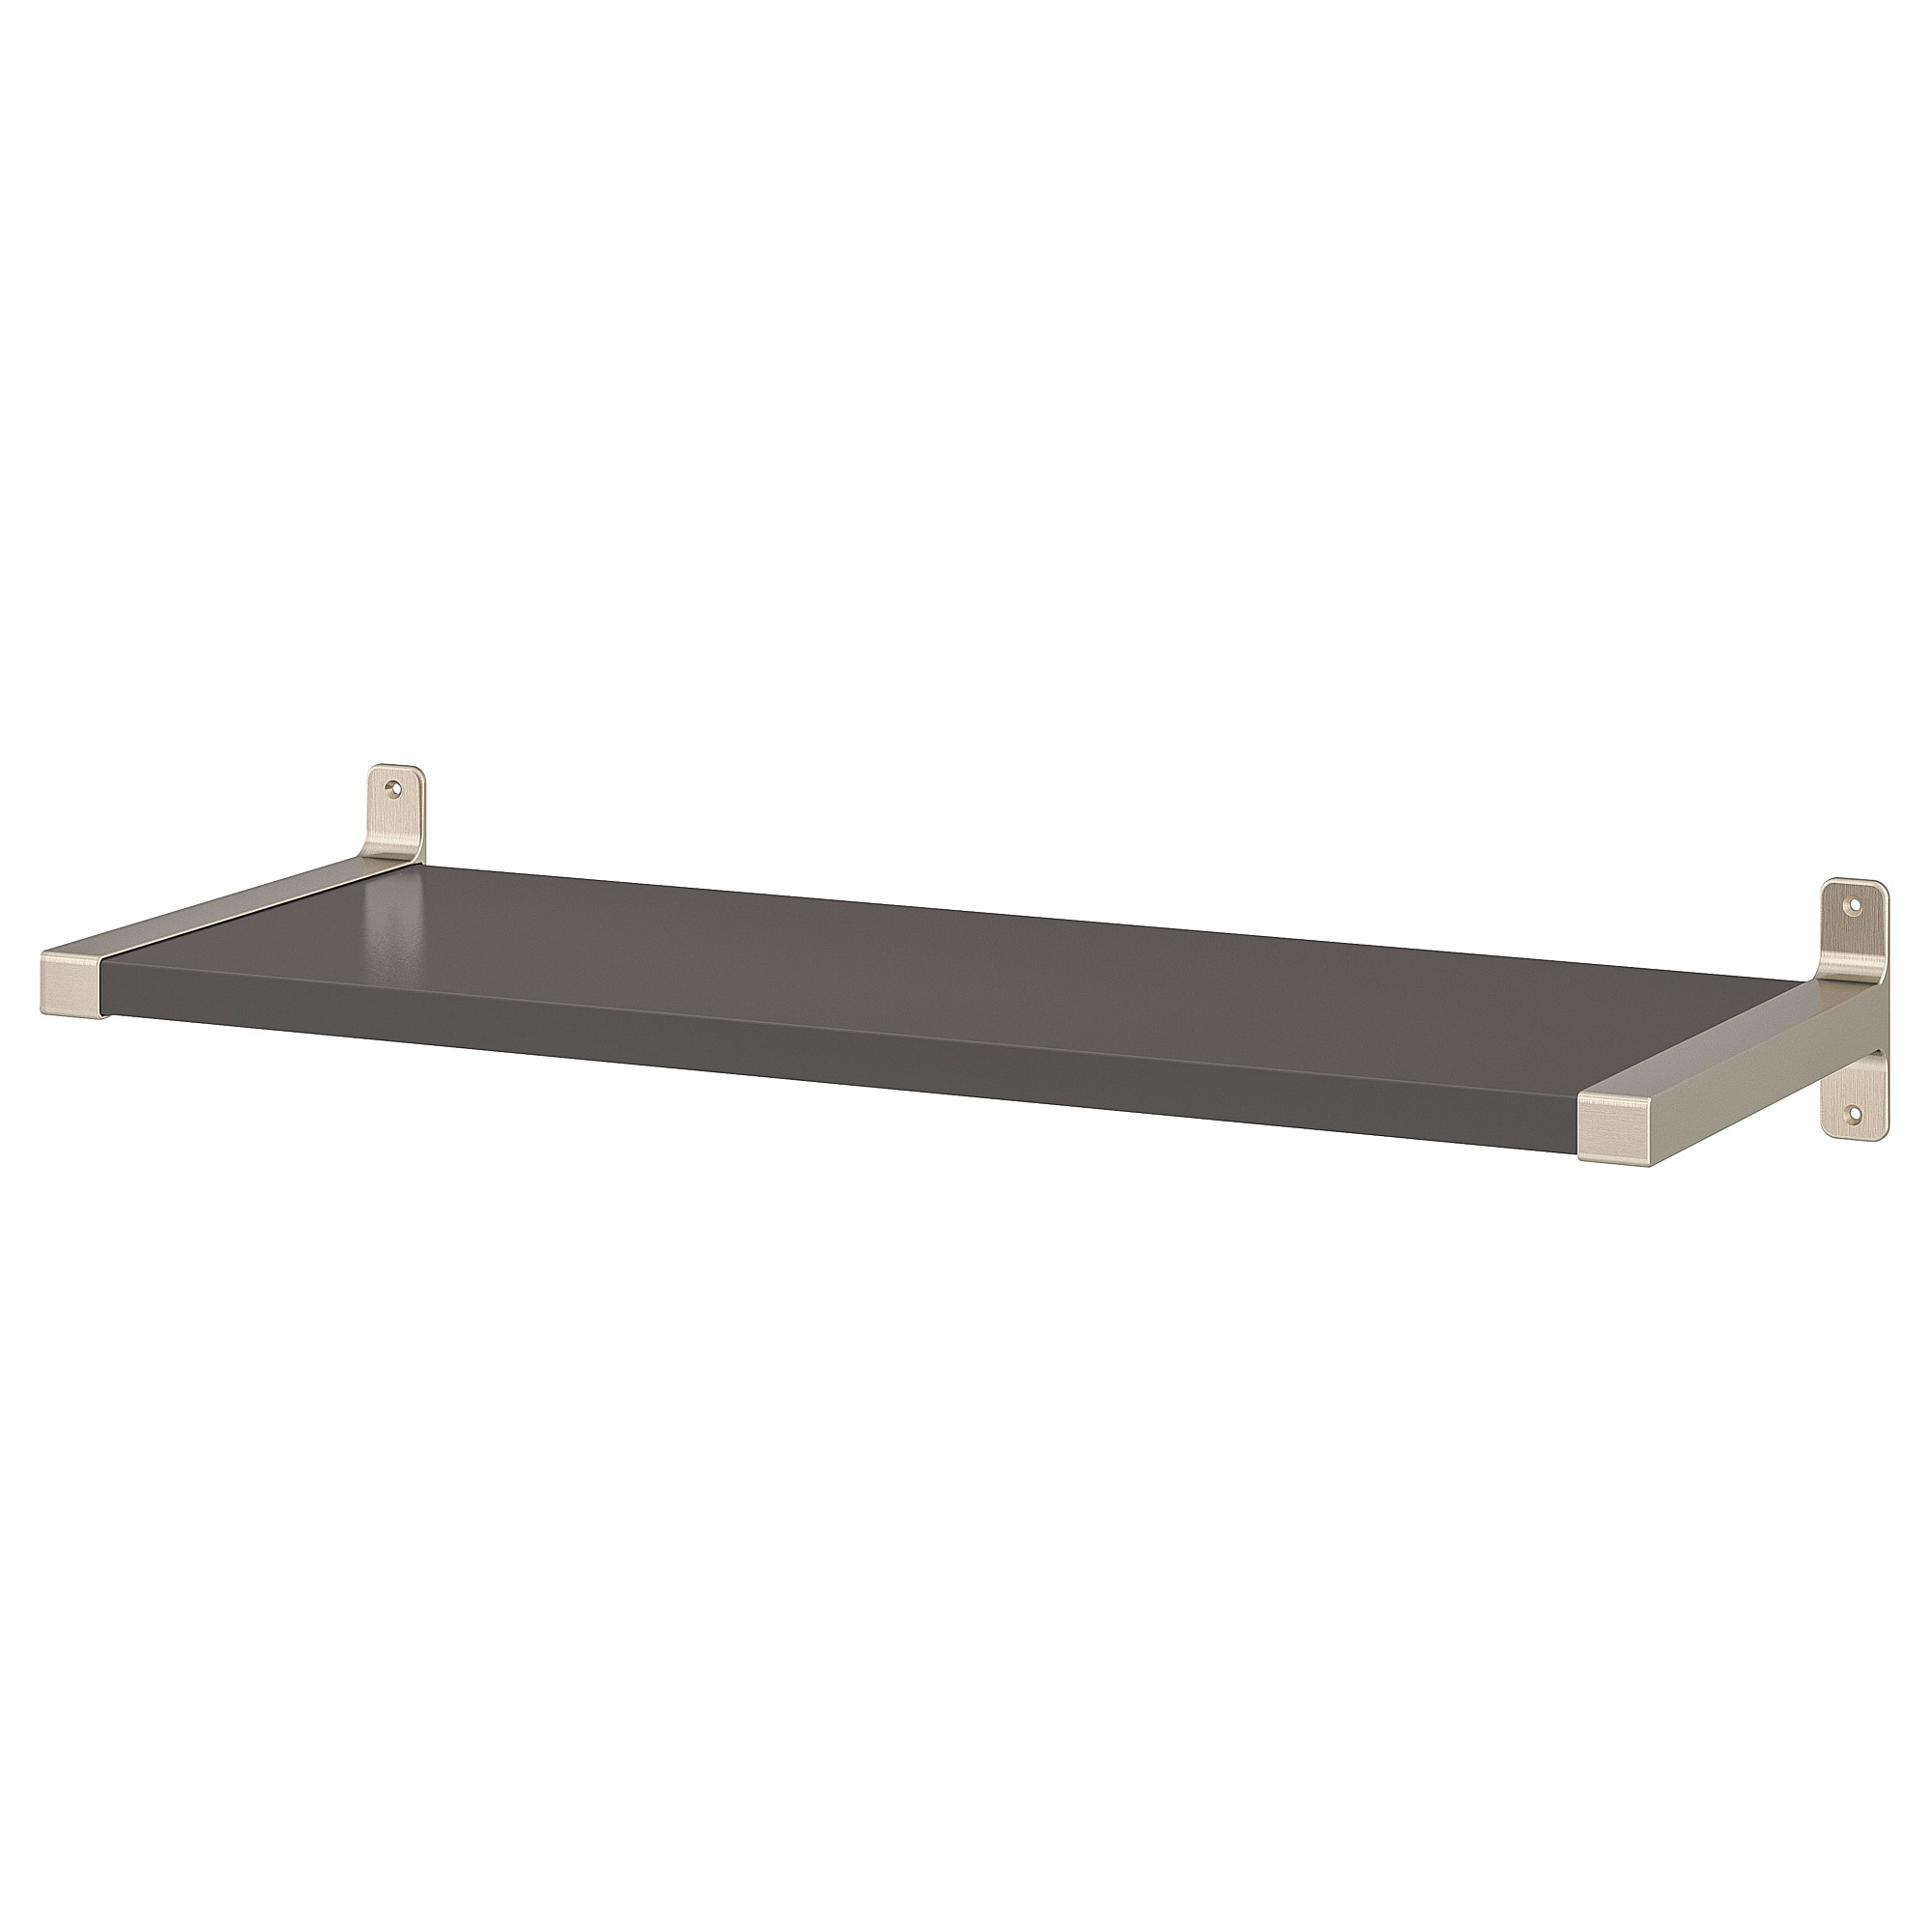 floating shelves wall shelf brackets ikea granhult bergshult dark grey nickel plated black gloss adhesive hooks for heavy tures watt led candelabra bulbs steam shower vanity ture